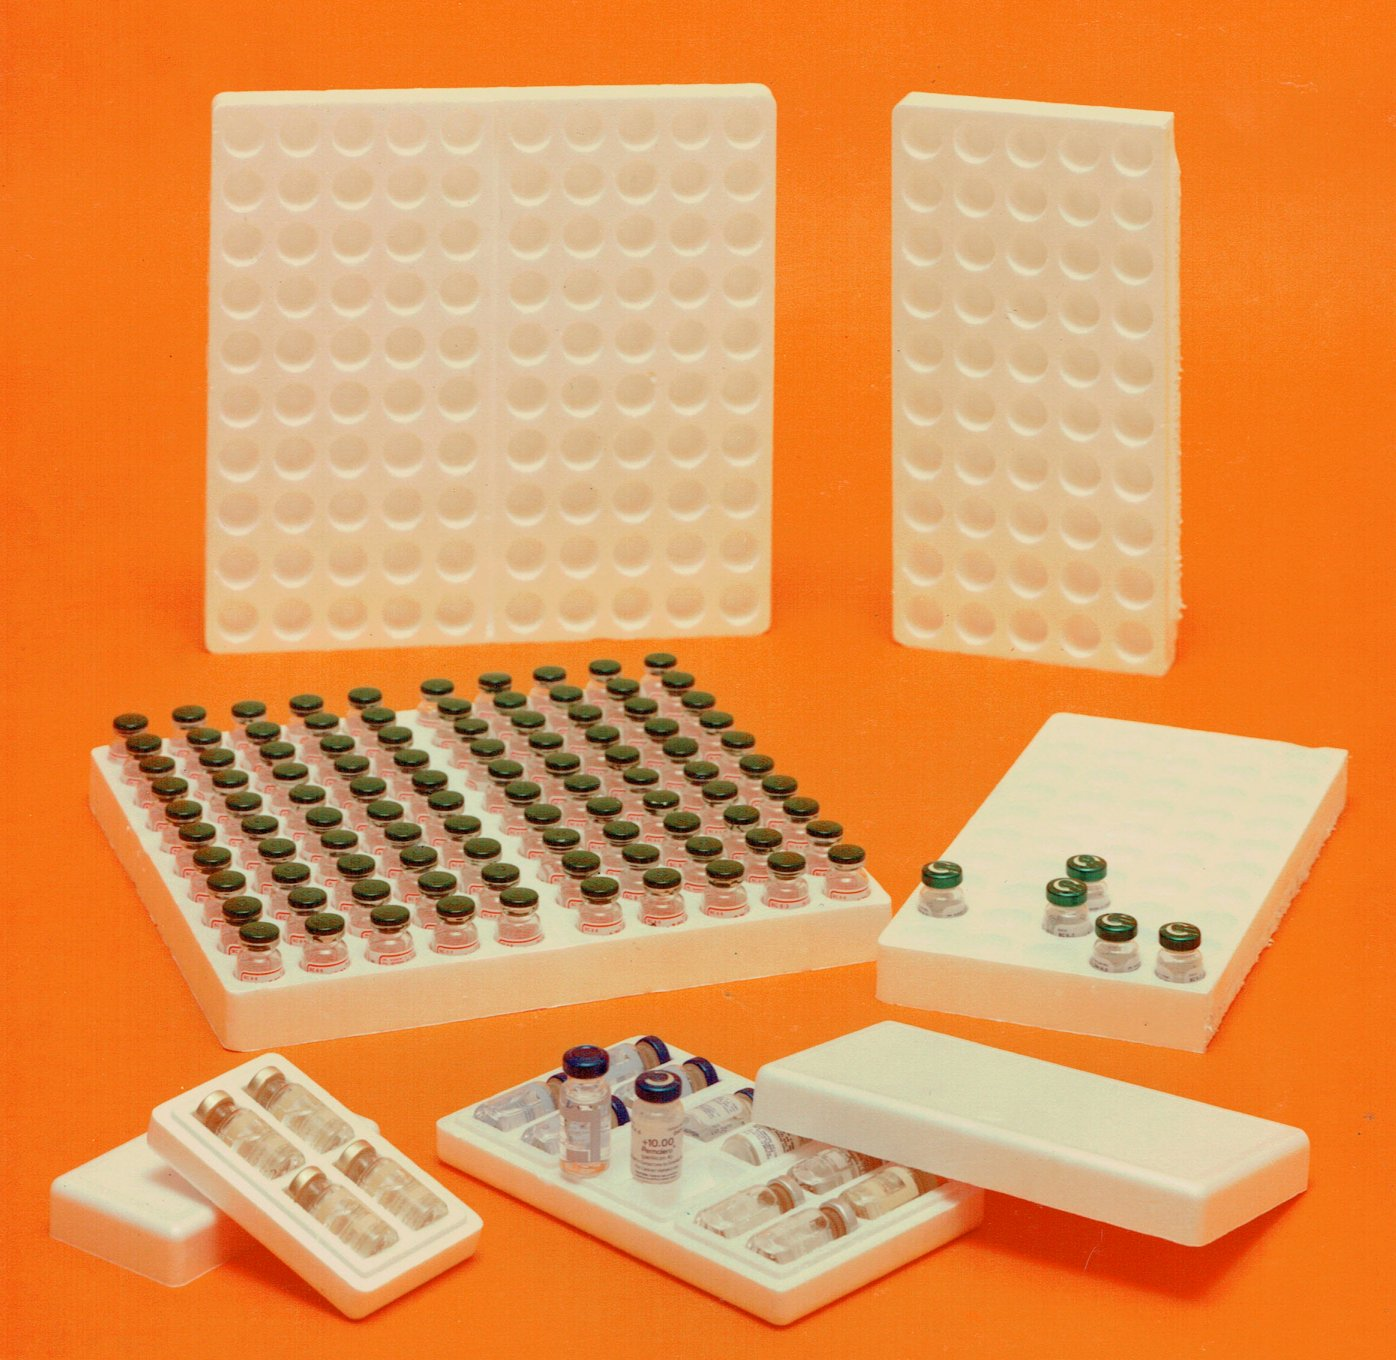 Test Kit Vial Packaging